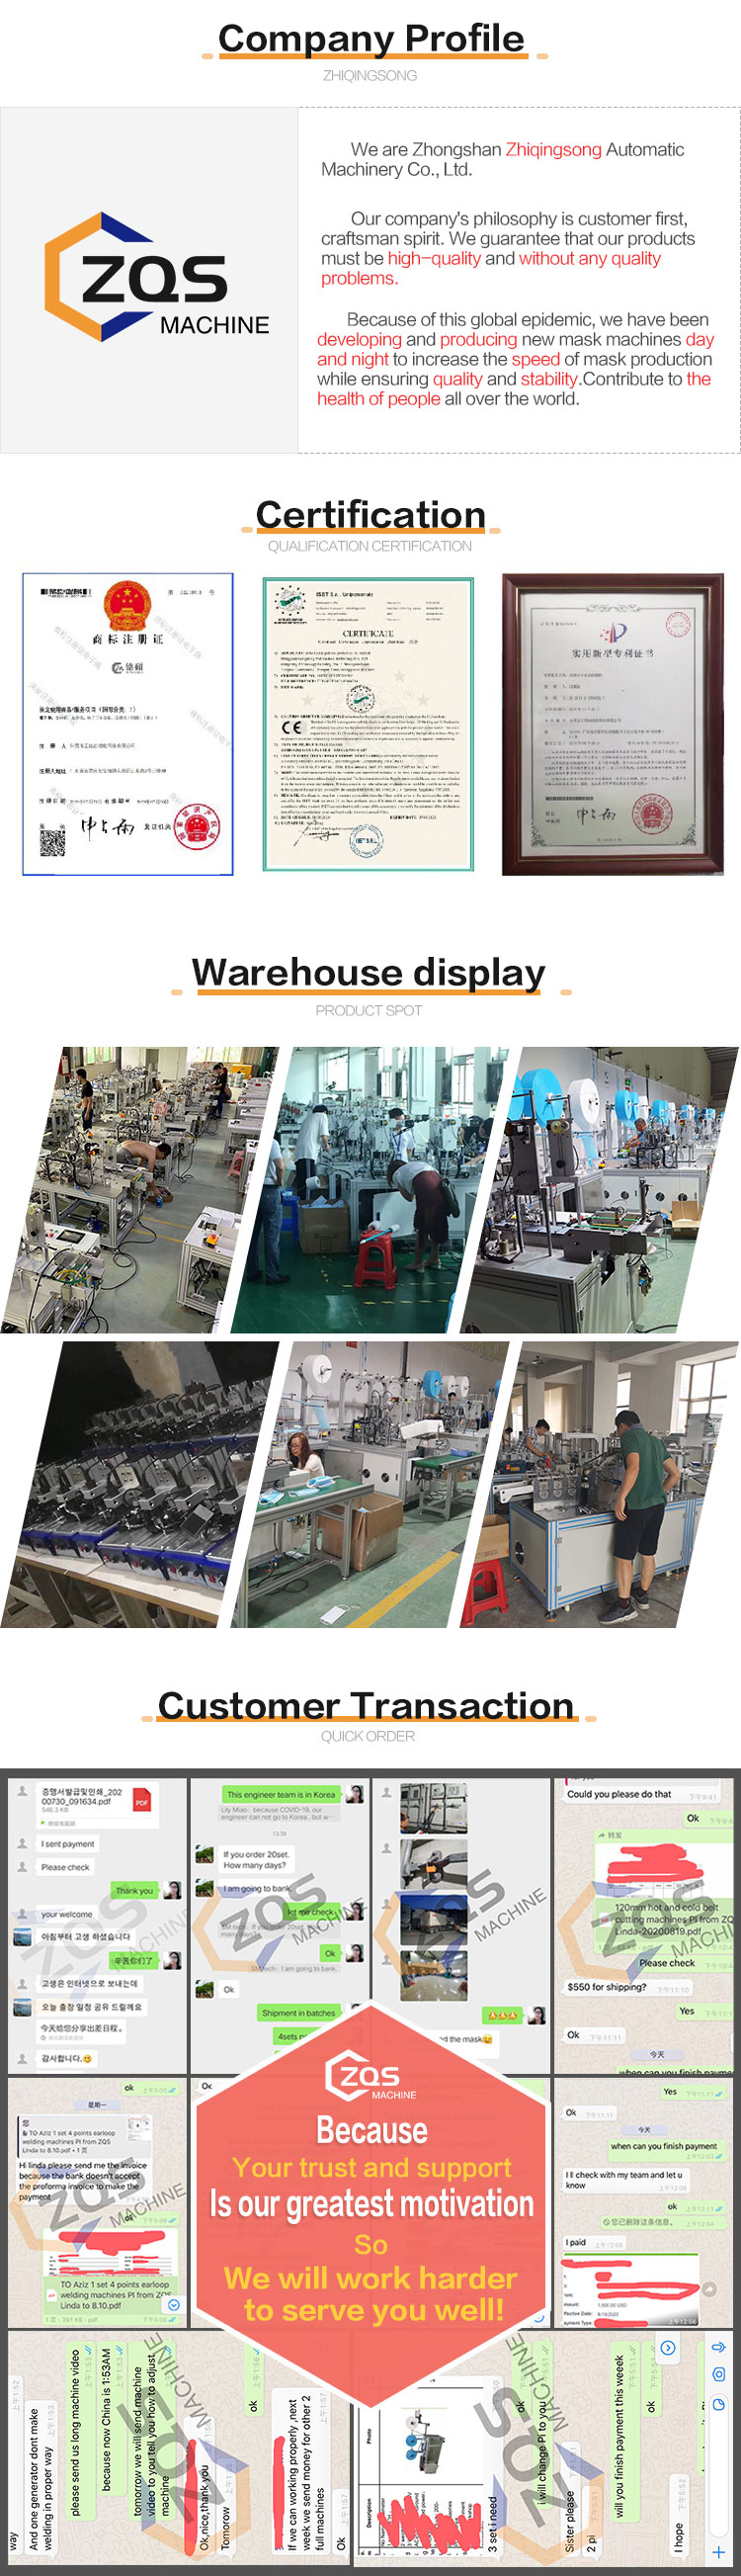 150-180 PCS/MIN dongguan automated face full mask maker machine production line machine for making face mask